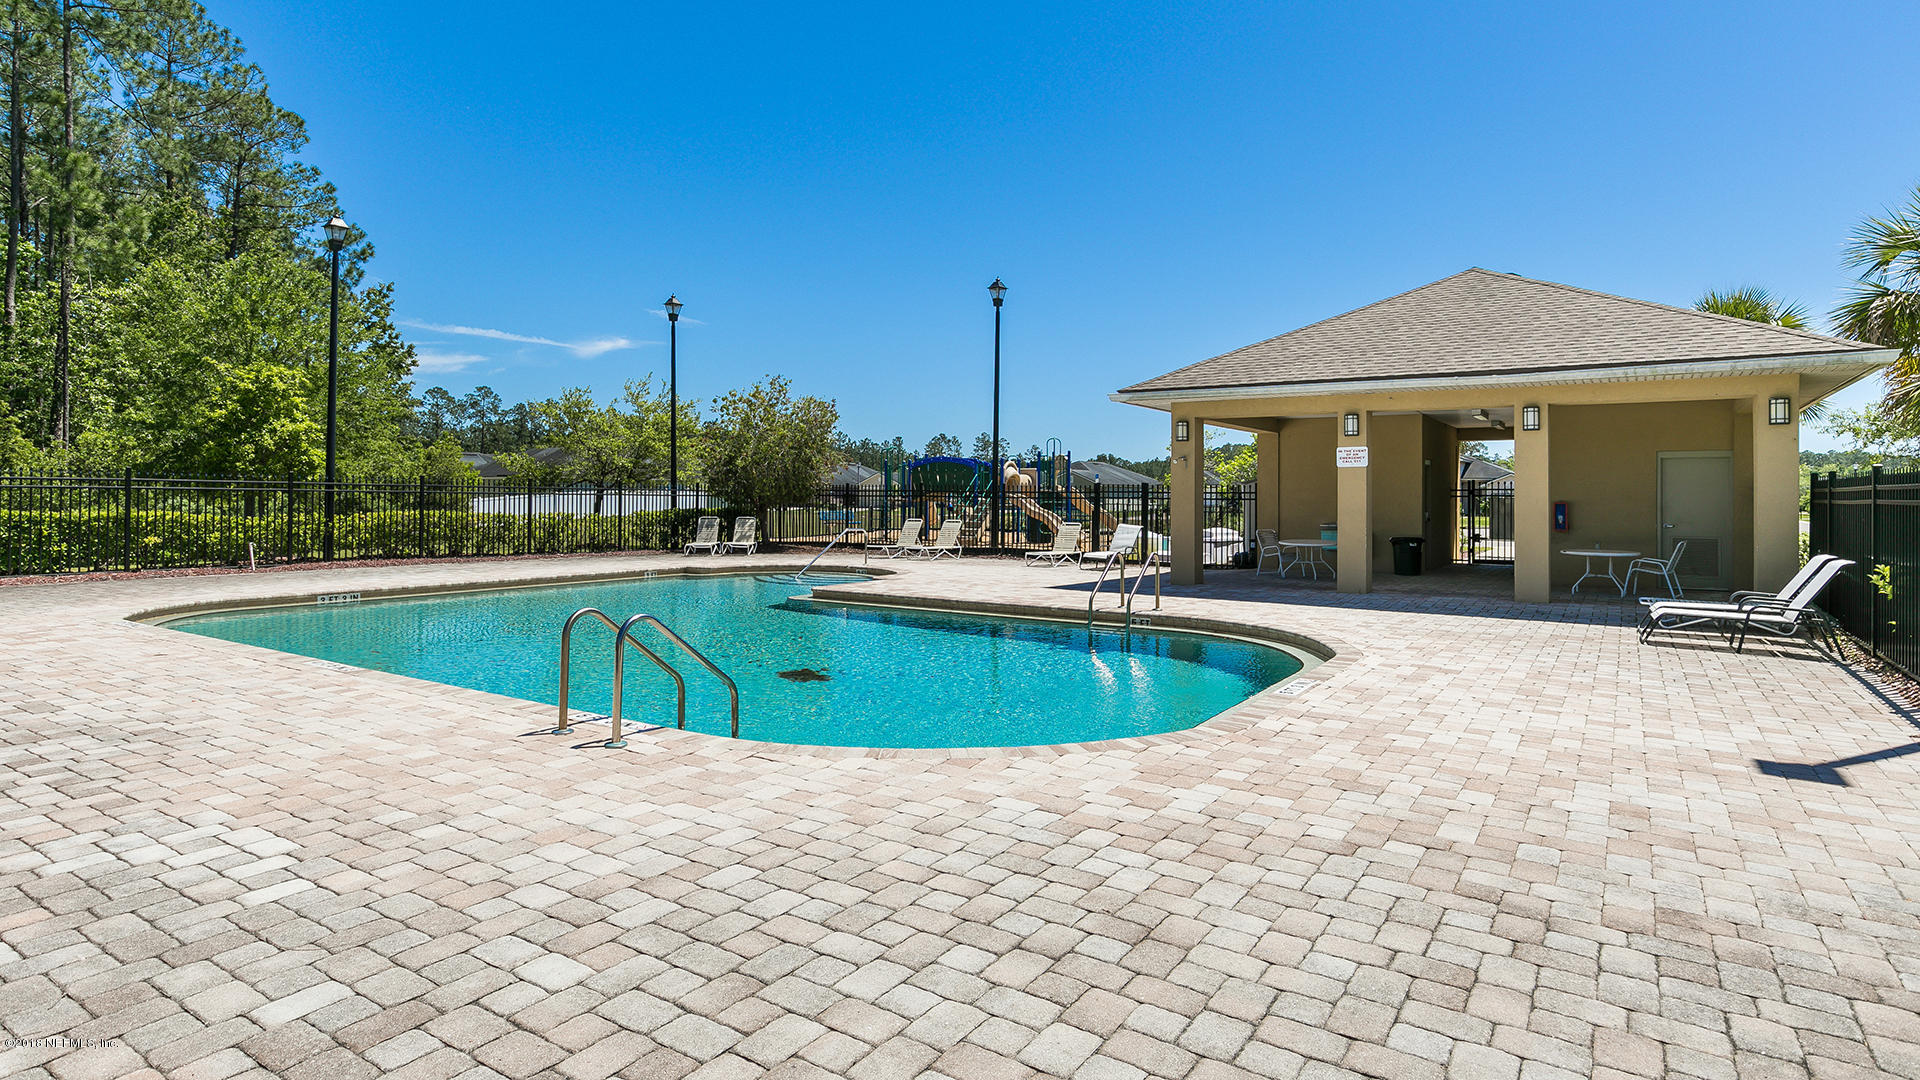 3231 ROGERS, JACKSONVILLE, FLORIDA 32208, 4 Bedrooms Bedrooms, ,2 BathroomsBathrooms,Residential - single family,For sale,ROGERS,953148